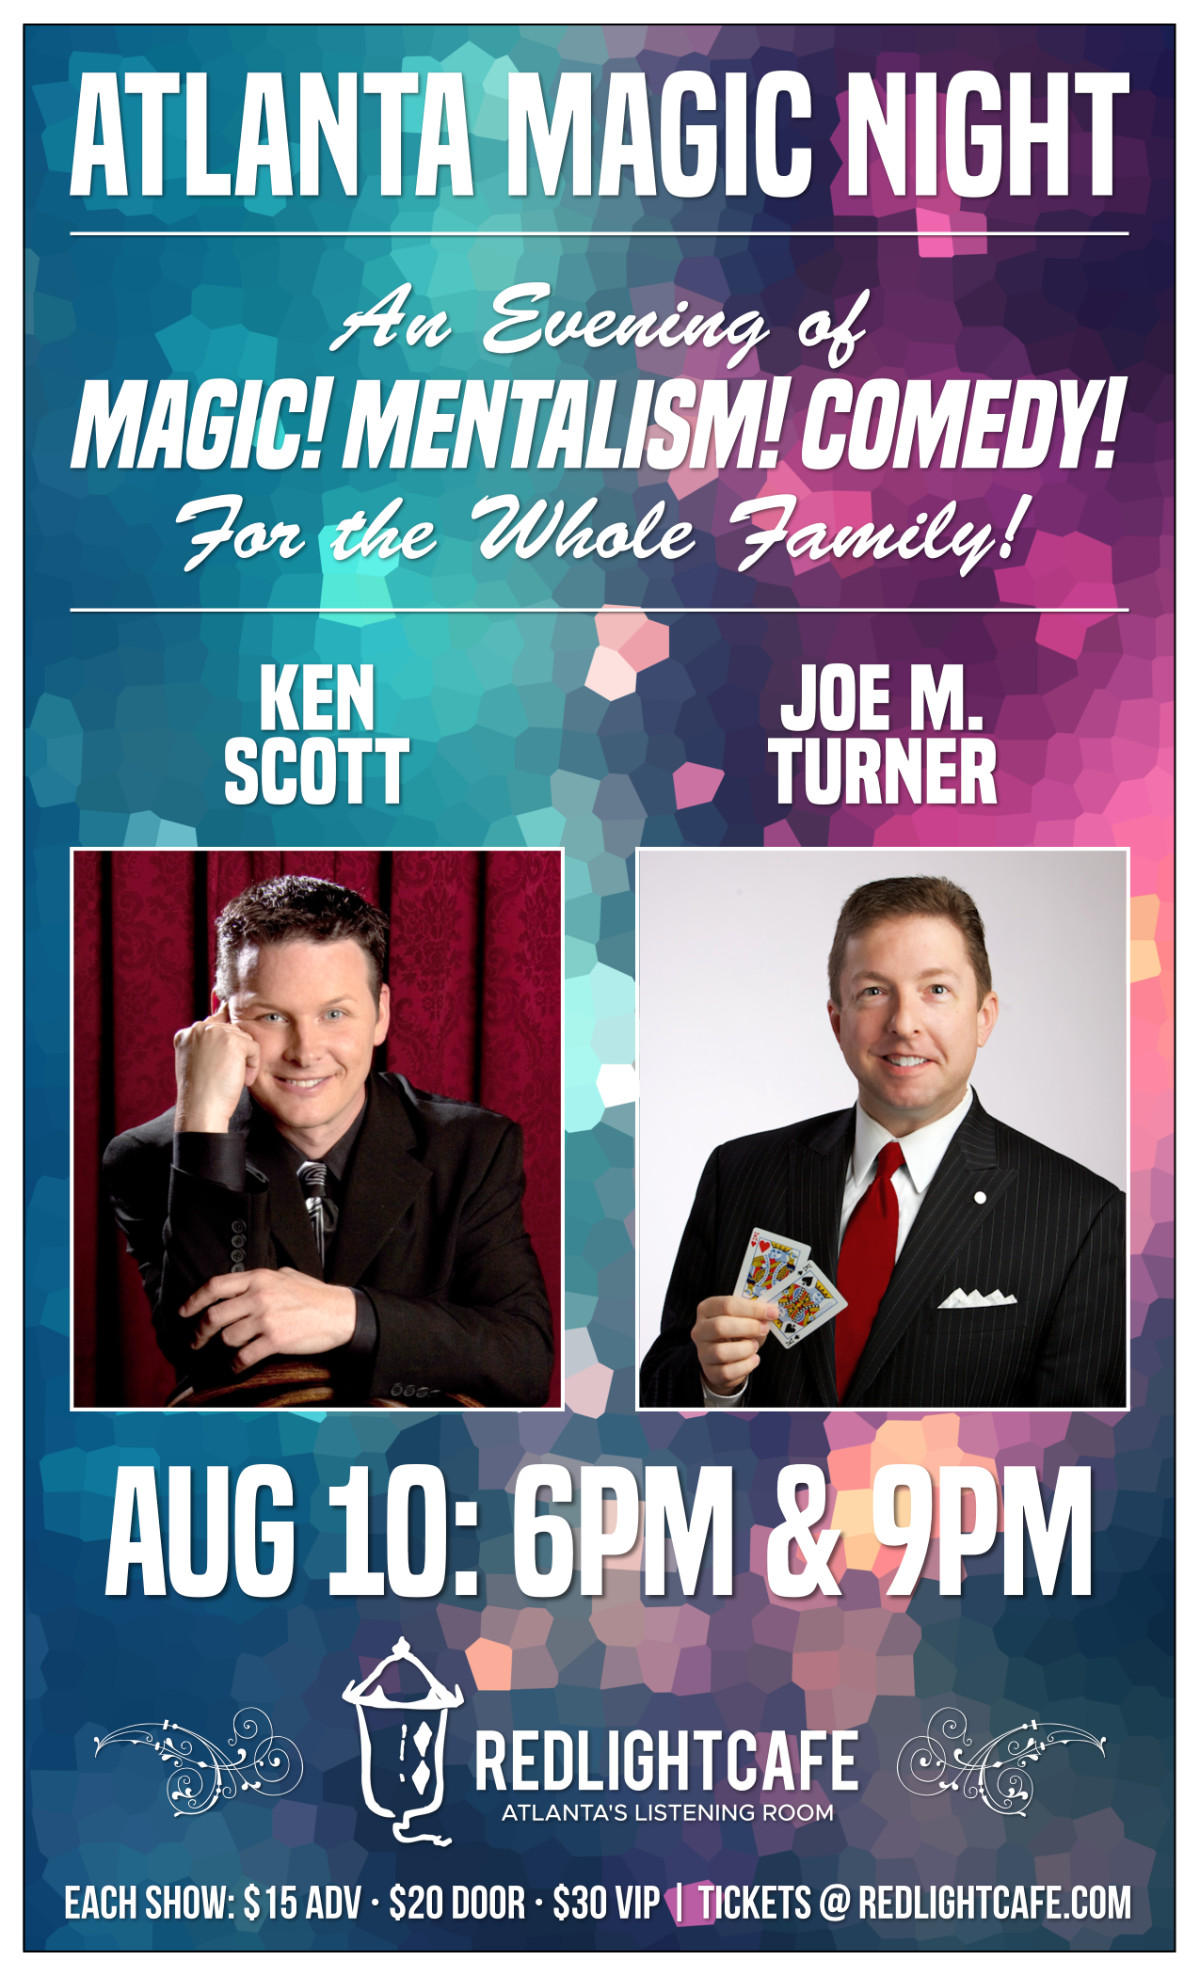 Atlanta Magic Night! w/ Ken Scott + Joe M. Turner - 6 PM SHOW — August 10, 2019 — Red Light Café, Atlanta, GA